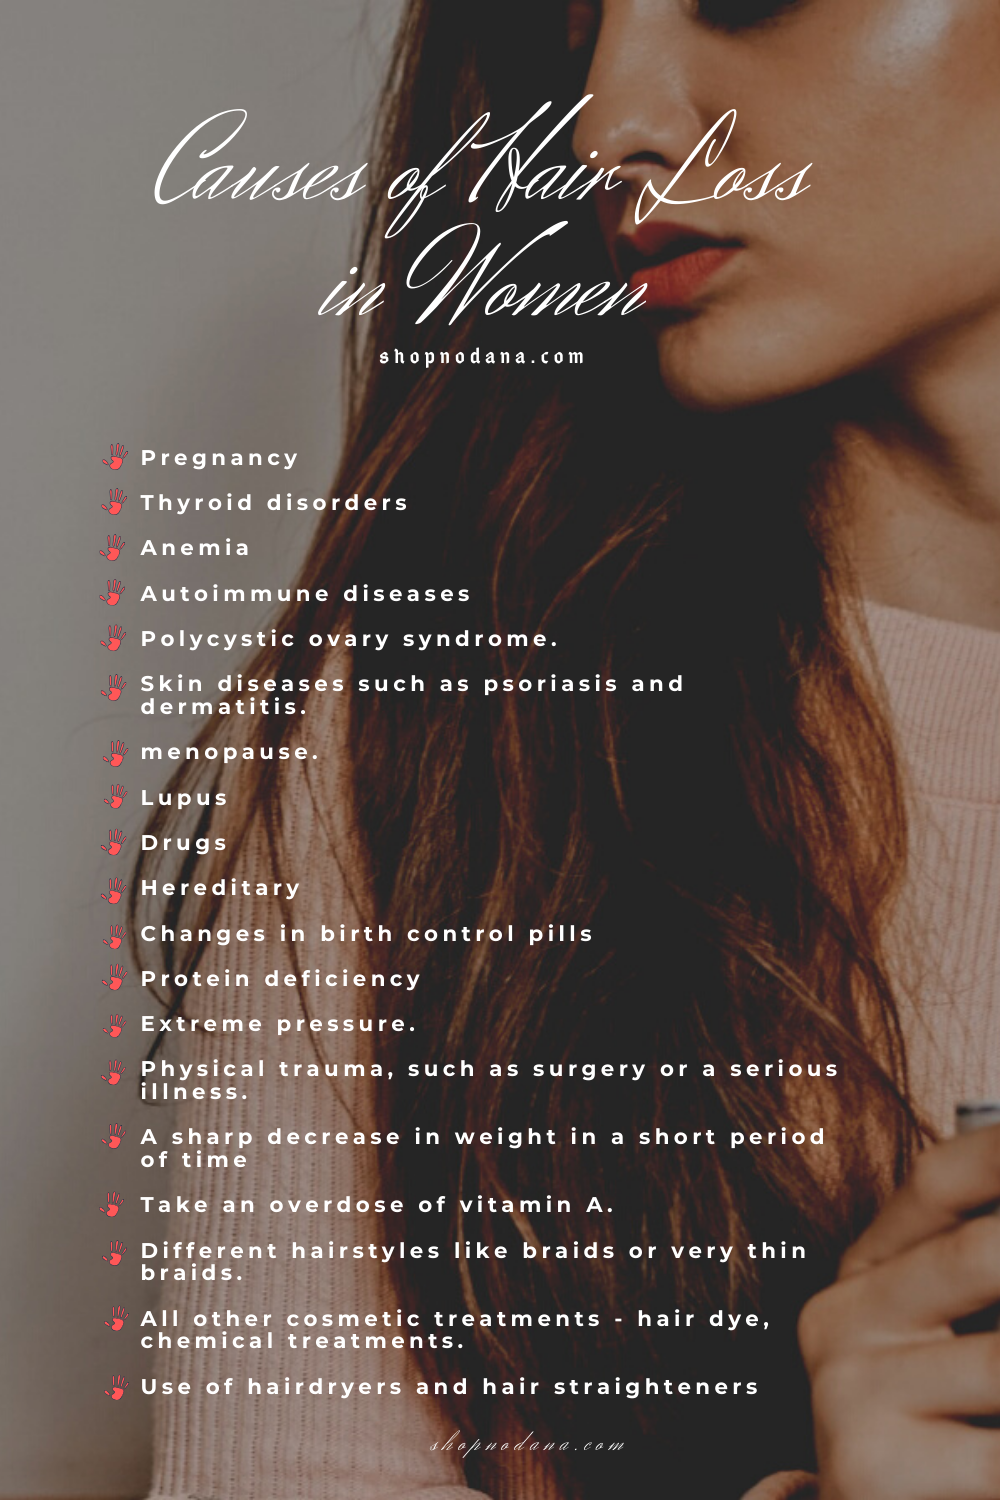 Causes of hair loss in women-shopnodana